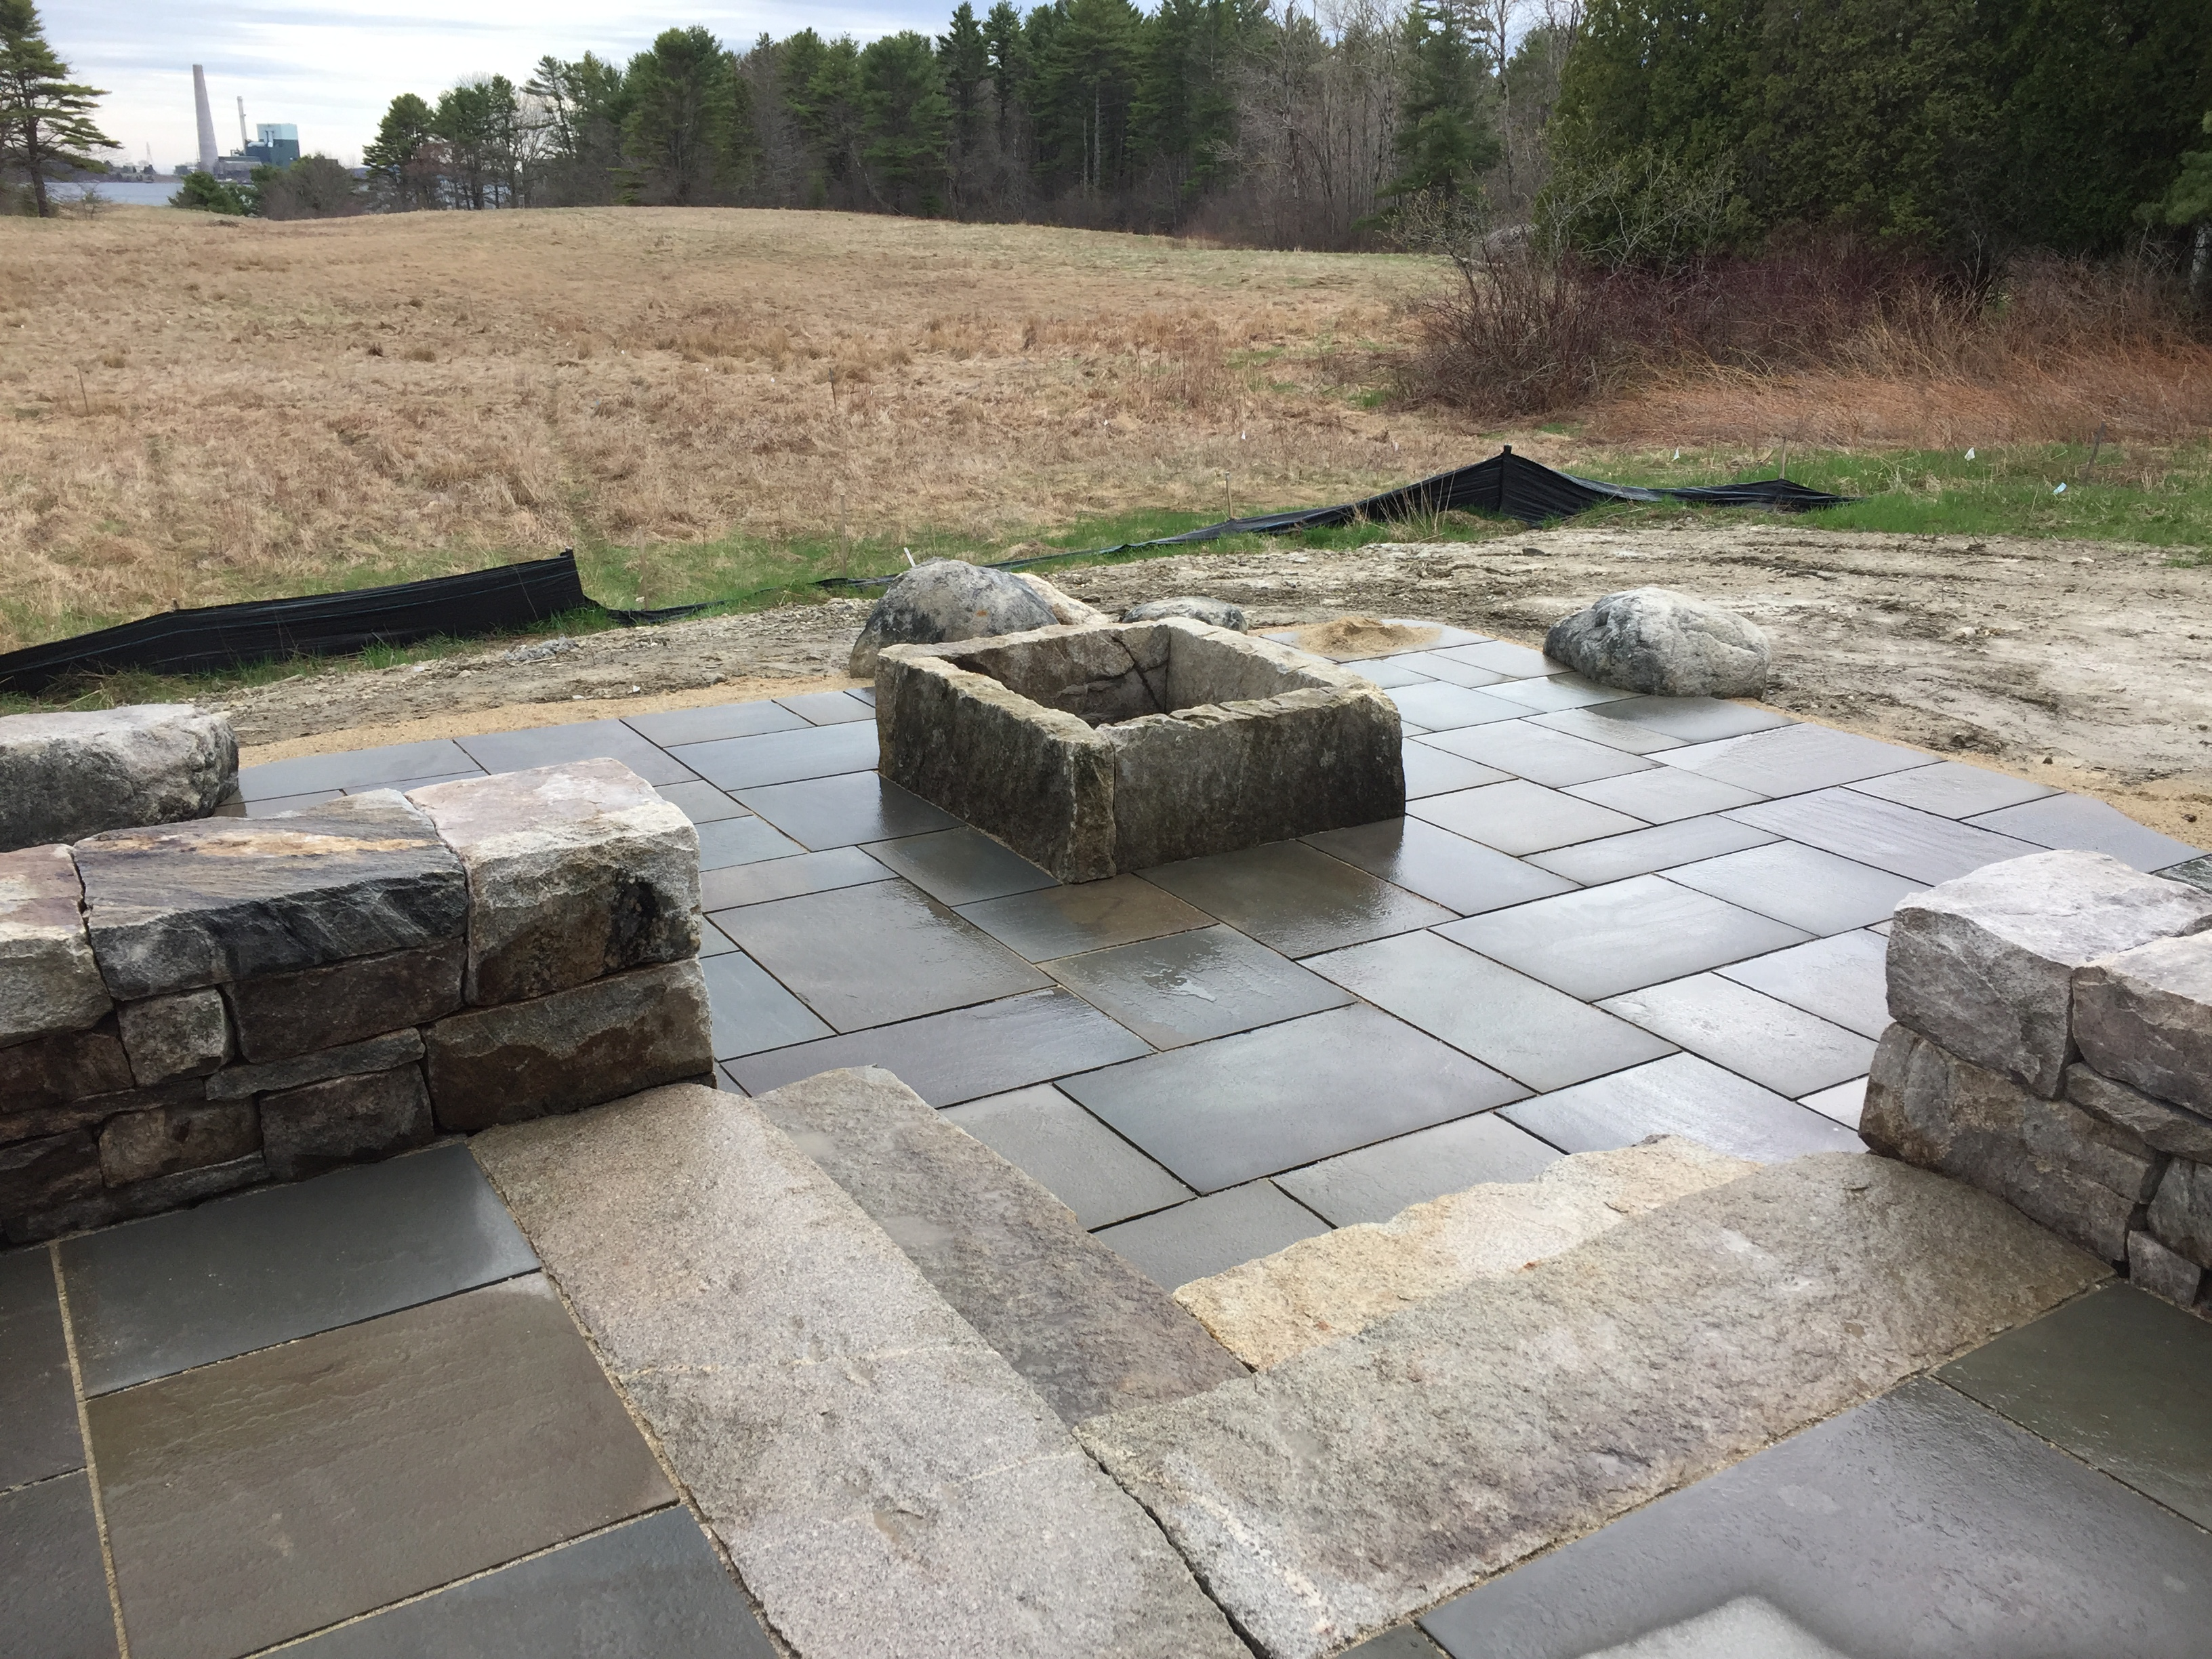 A Dry Laid Granite Sitting Wall Retains The Upper Level Of This Bluestone  Patio. On The Lower Level Four Large Slabs Of Granite Make A Simple Housing  For A ...